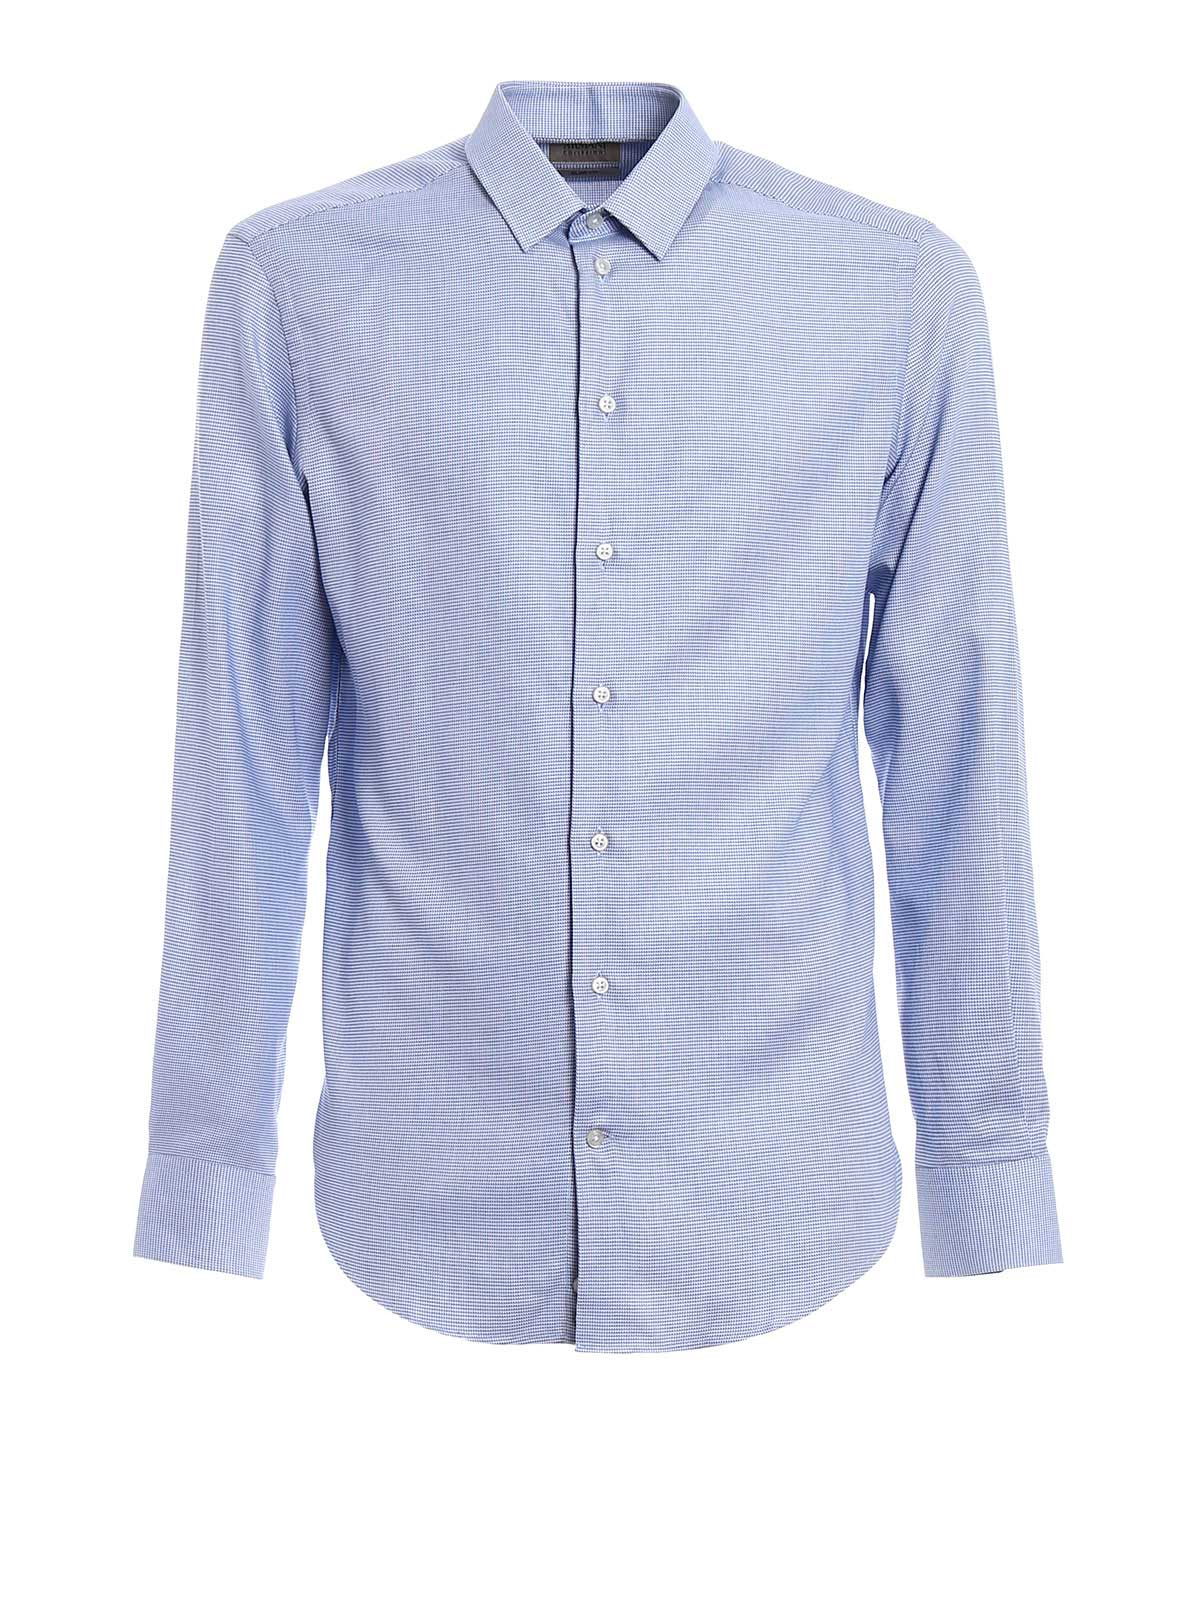 Picture of ARMANI | Camicie Camicia slim in cotone fantasia